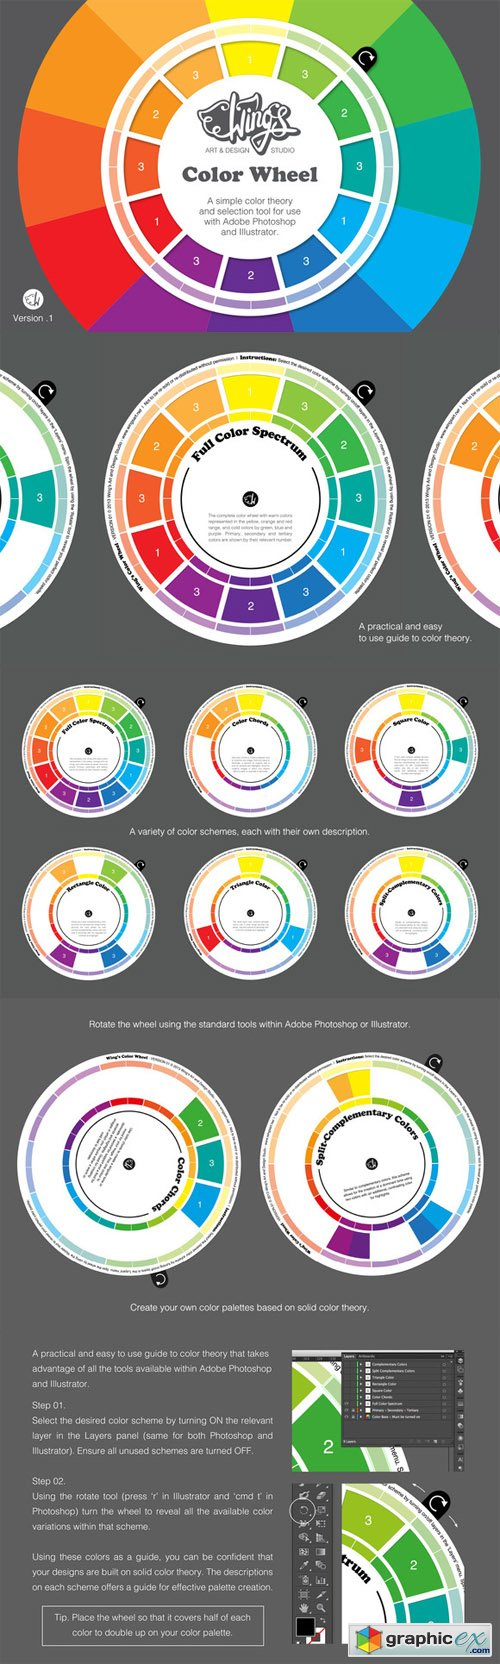 Wing's Color Wheel - Design Tool